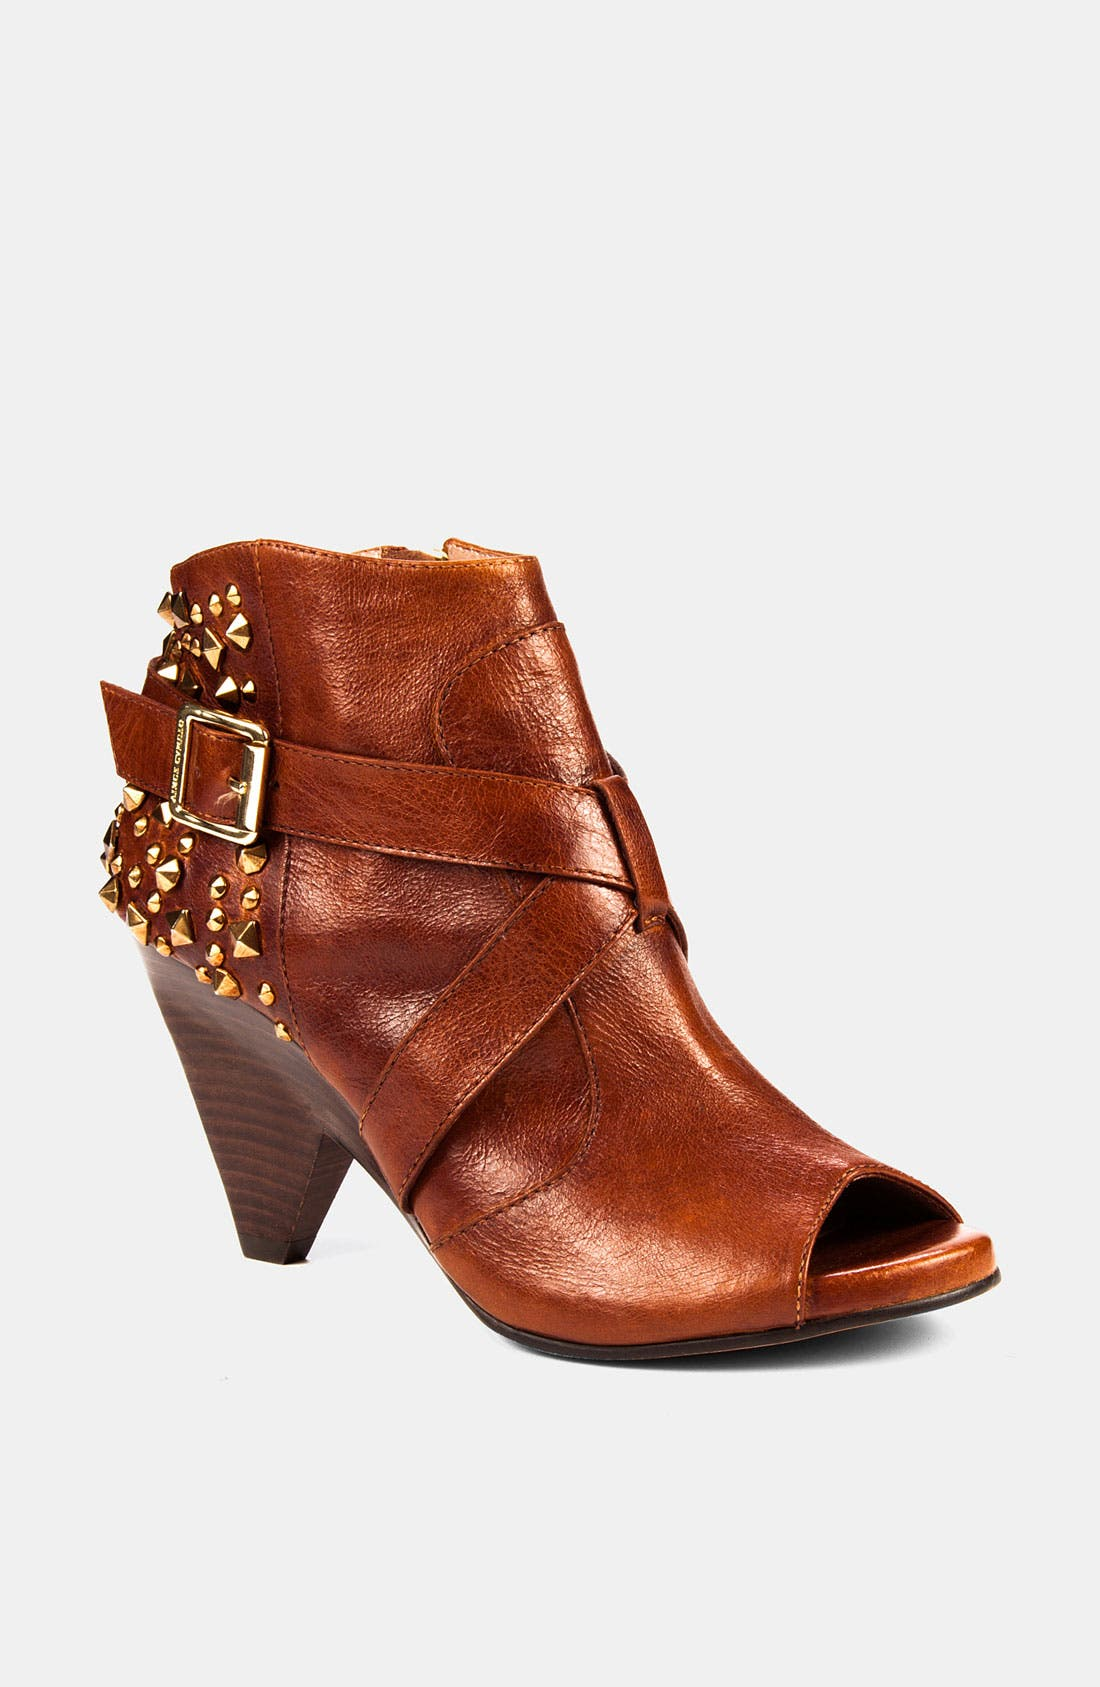 Alternate Image 1 Selected - Vince Camuto 'Padara' Bootie